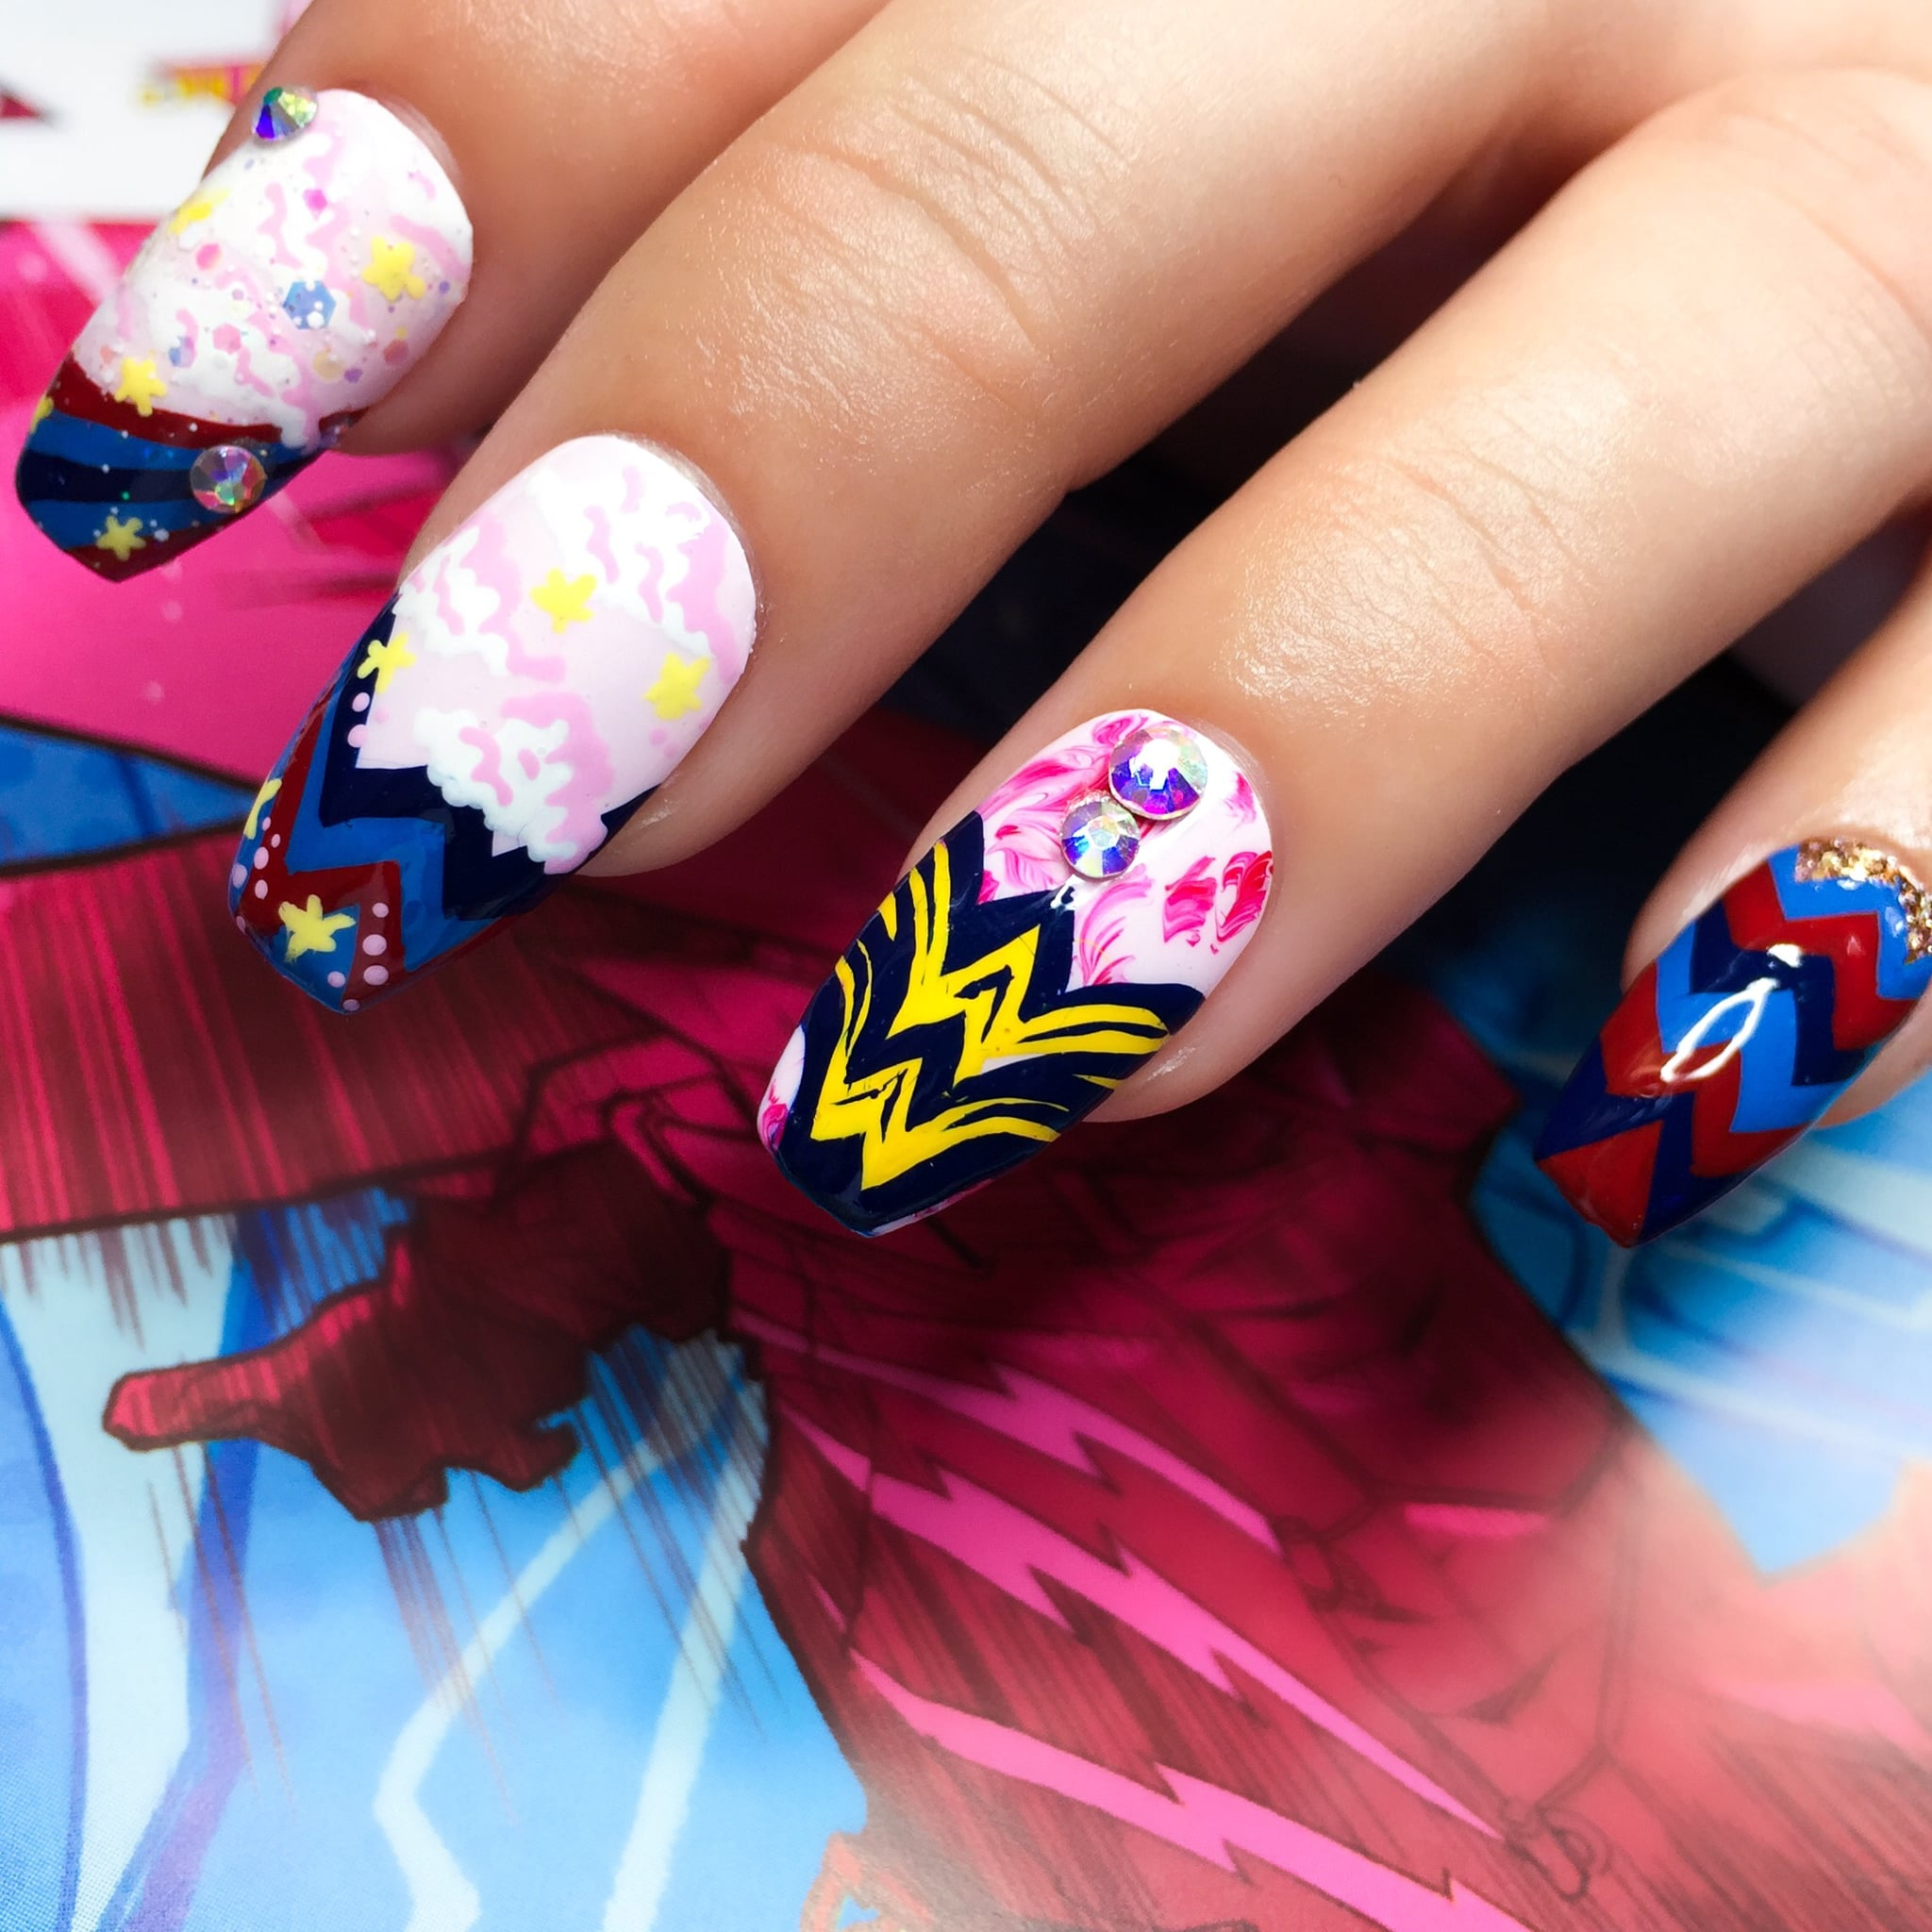 Nails Wonder Woman Can Nail Art Be Feminist: Wonder Woman Nail Ideas